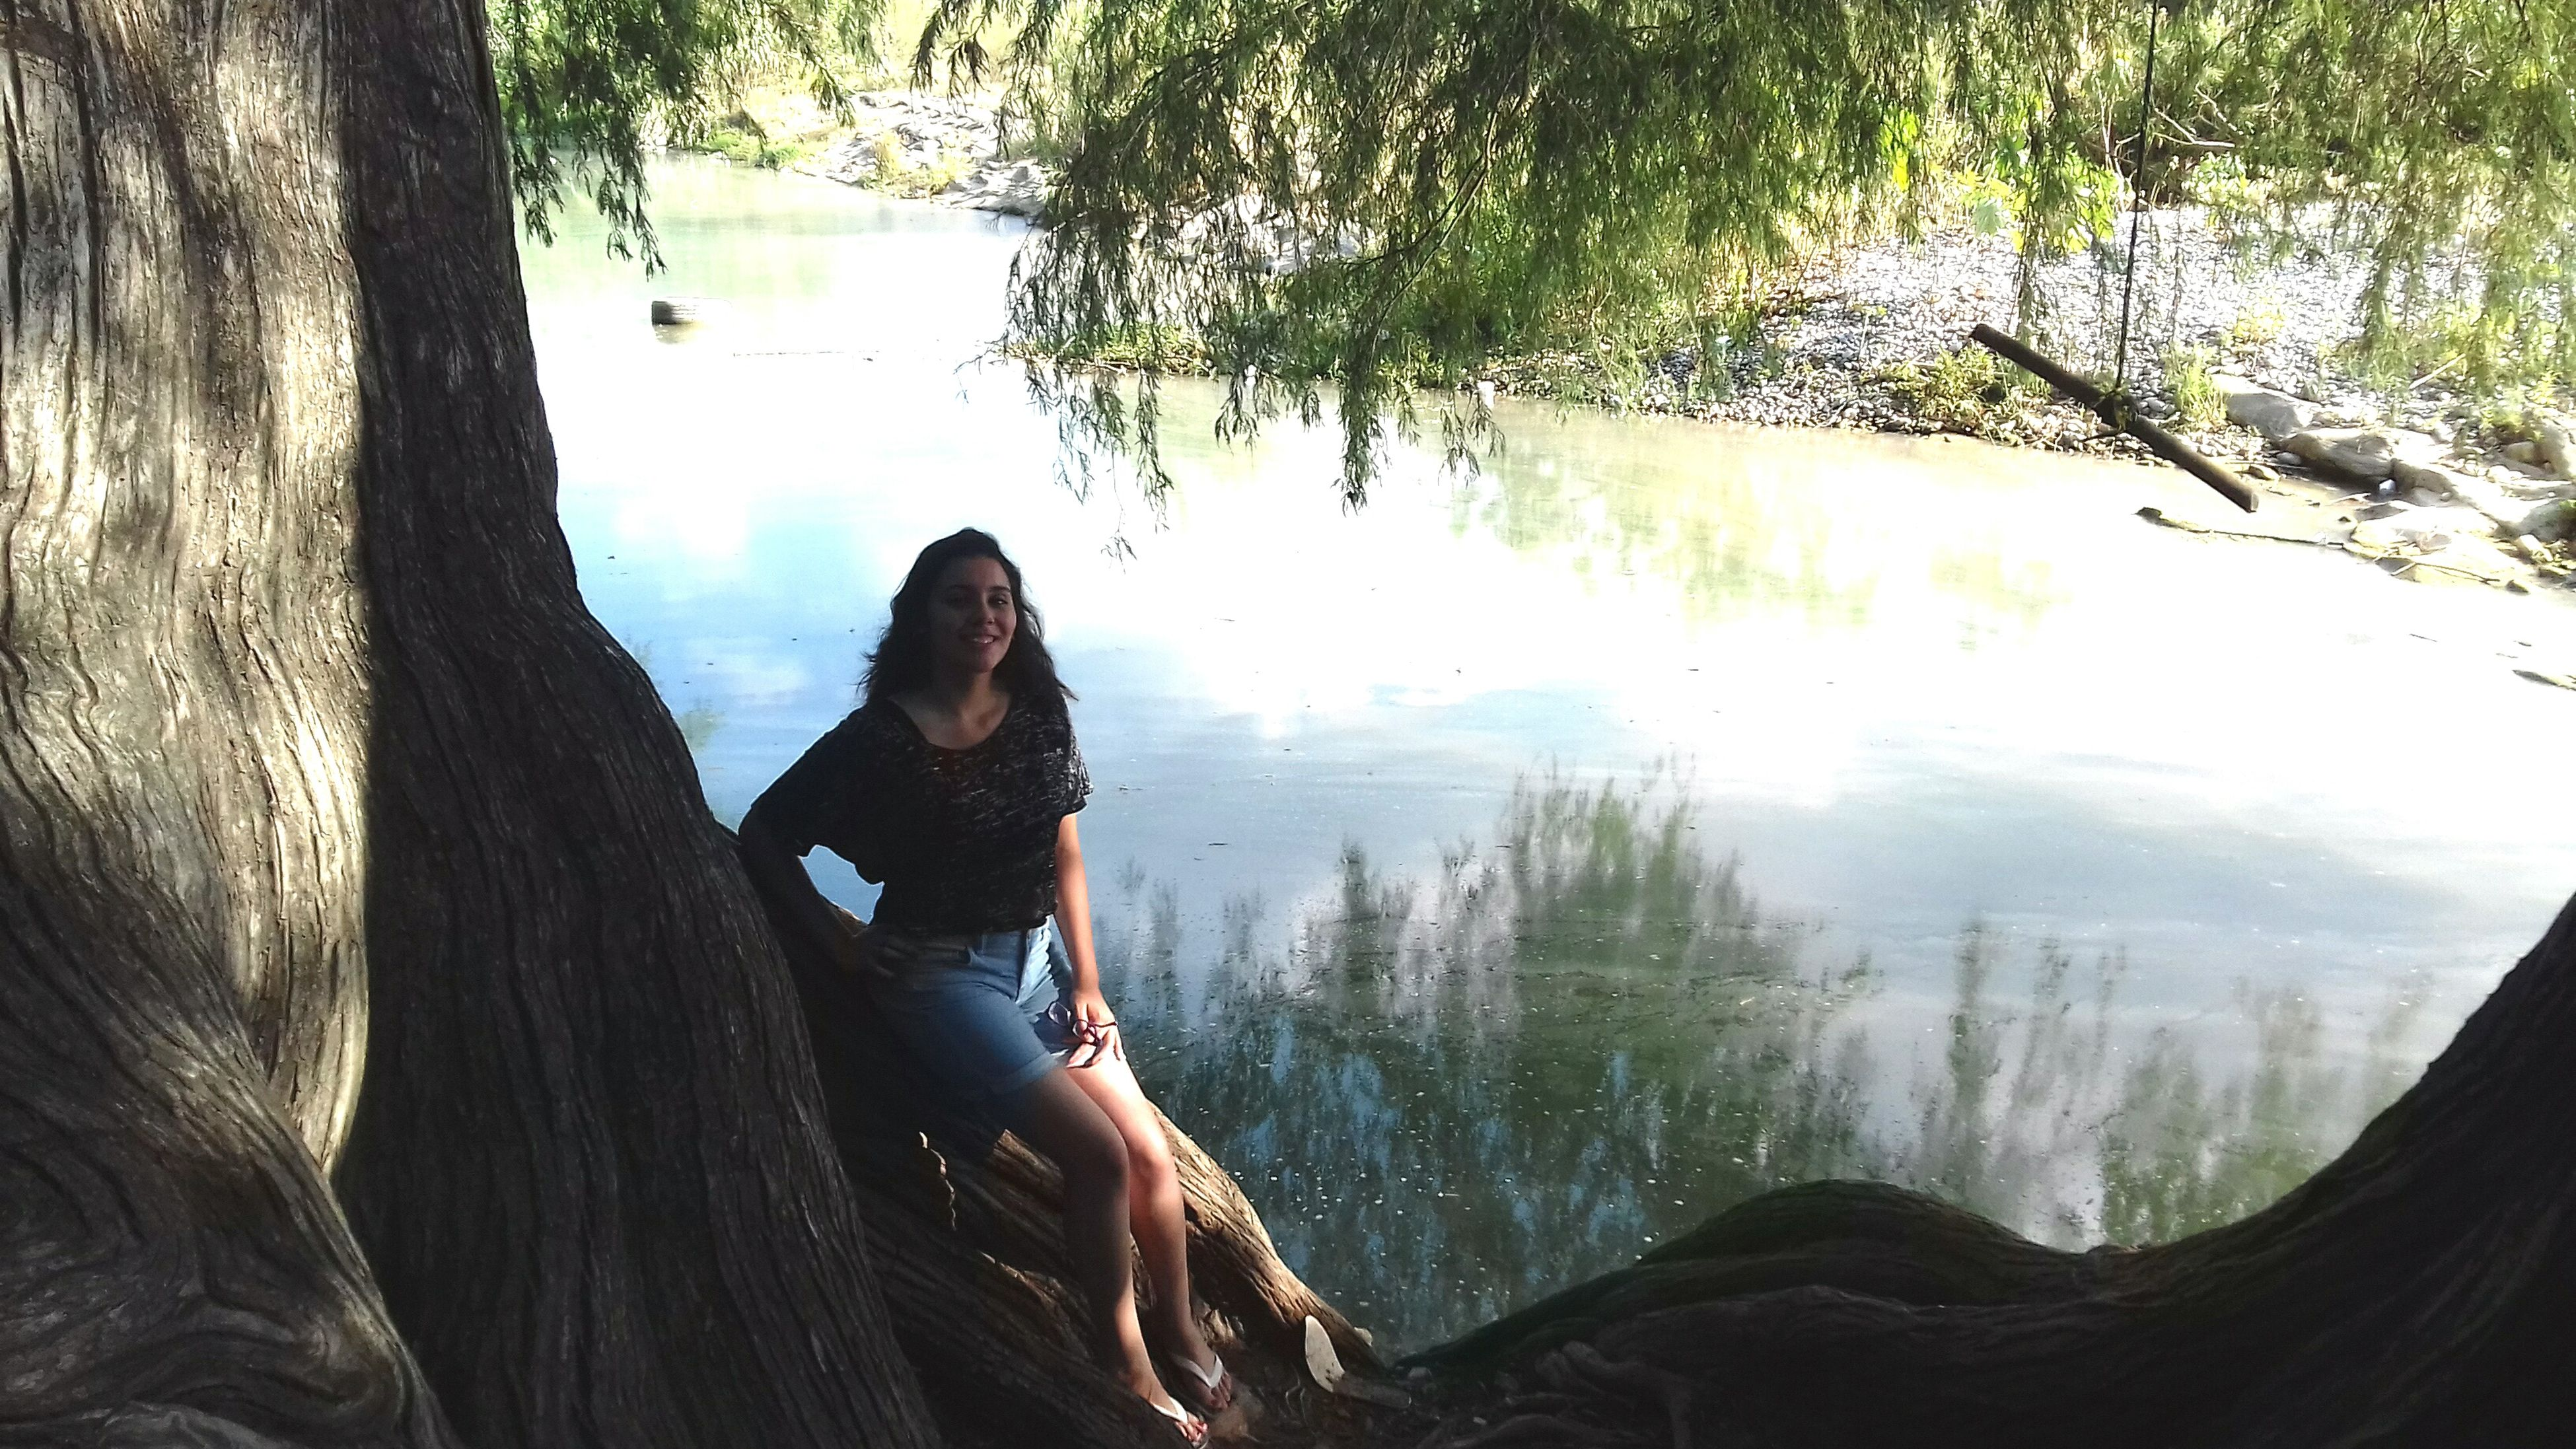 tree, one person, nature, real people, leisure activity, tree trunk, day, beauty in nature, water, young adult, young women, tranquility, lifestyles, full length, tranquil scene, outdoors, sitting, scenics, relaxation, standing, women, beautiful woman, people